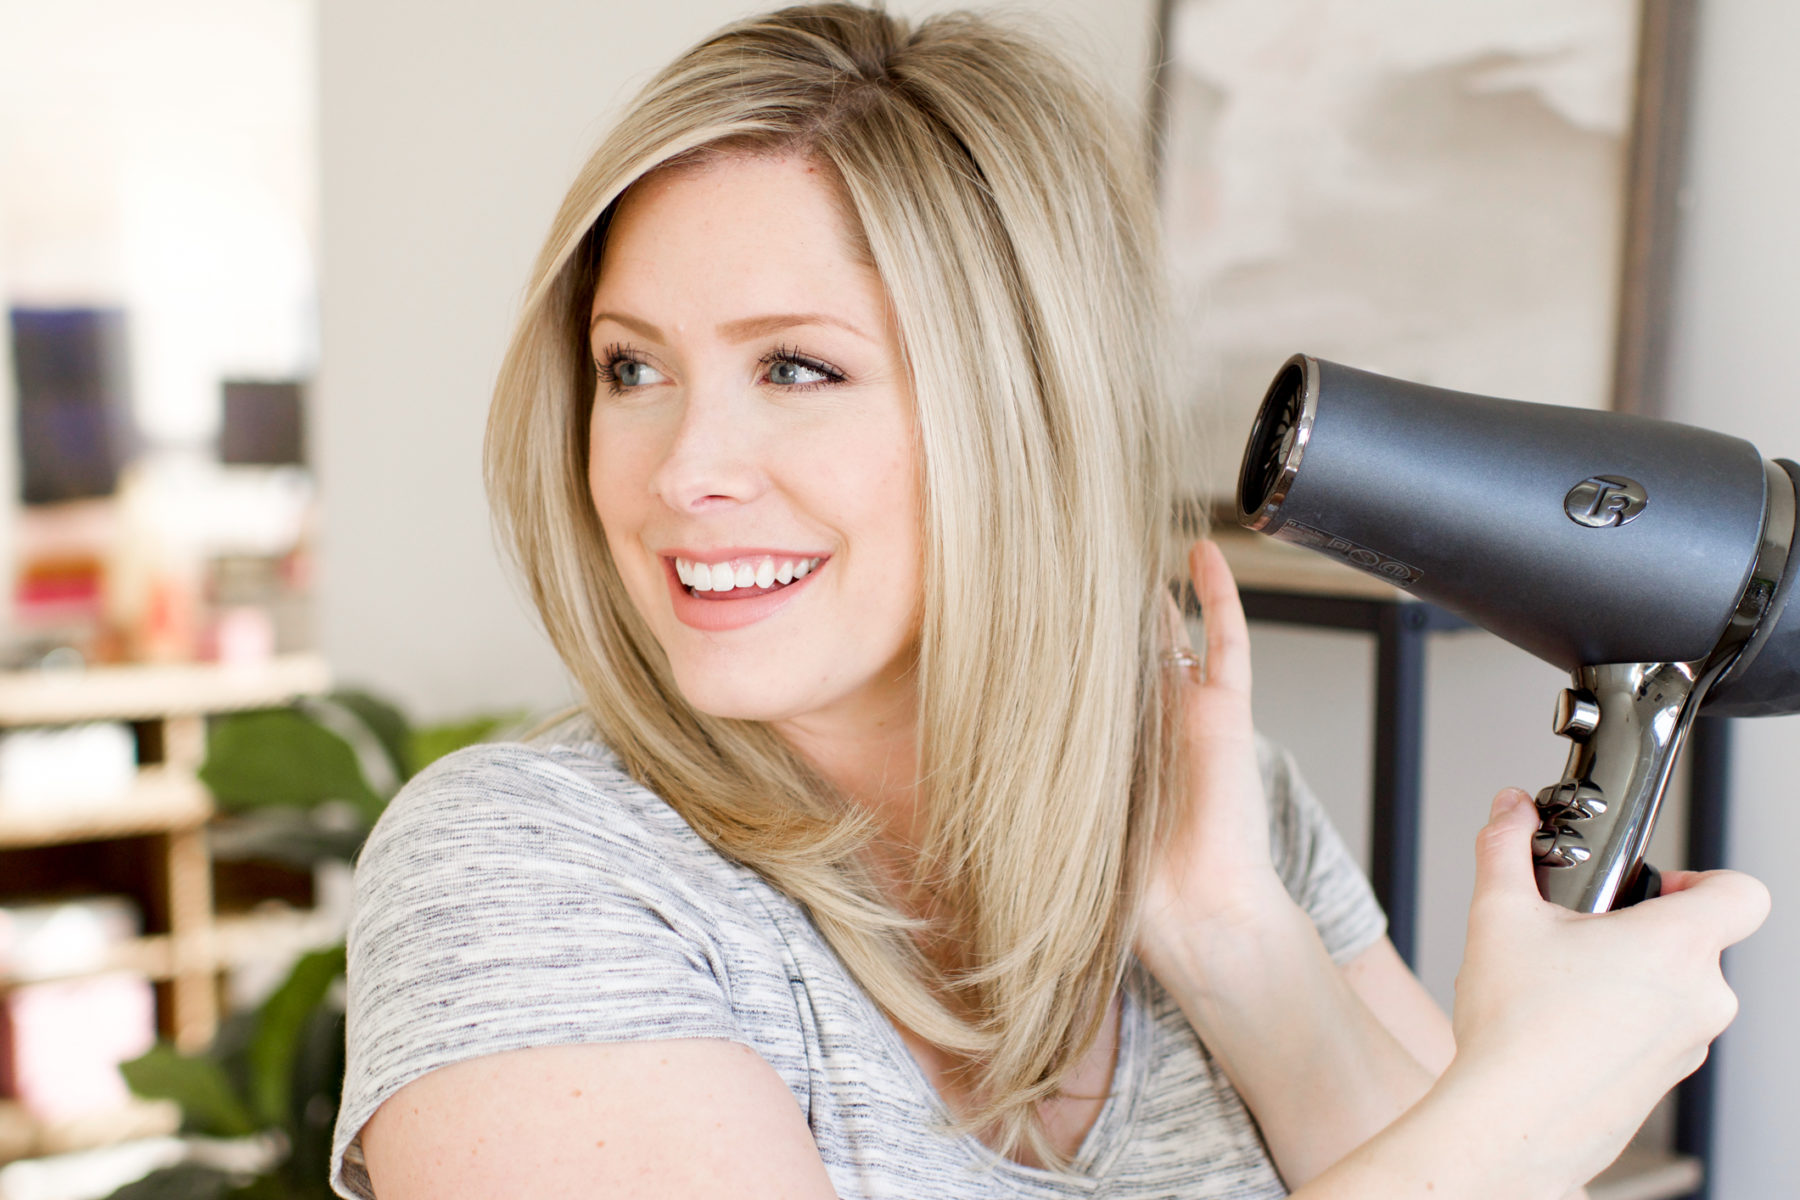 The Blow Dry Mistakes You May Be Making And How To Fix Them The Small Things Blog